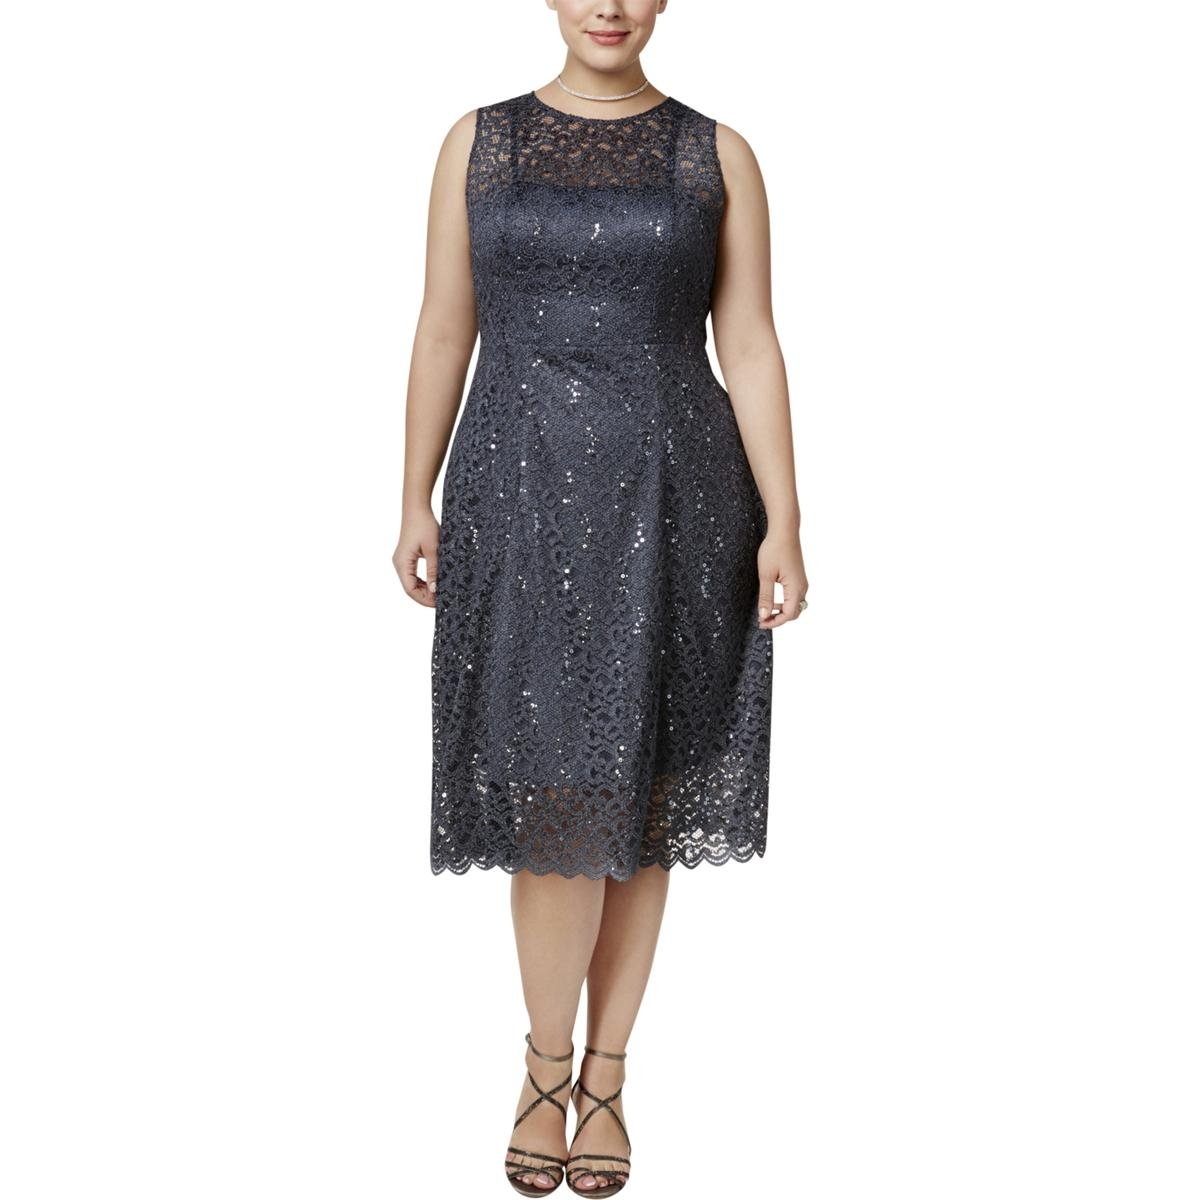 Betsy & Adam Womens Plus Lace Sequined Cocktail Dress Gray 20W